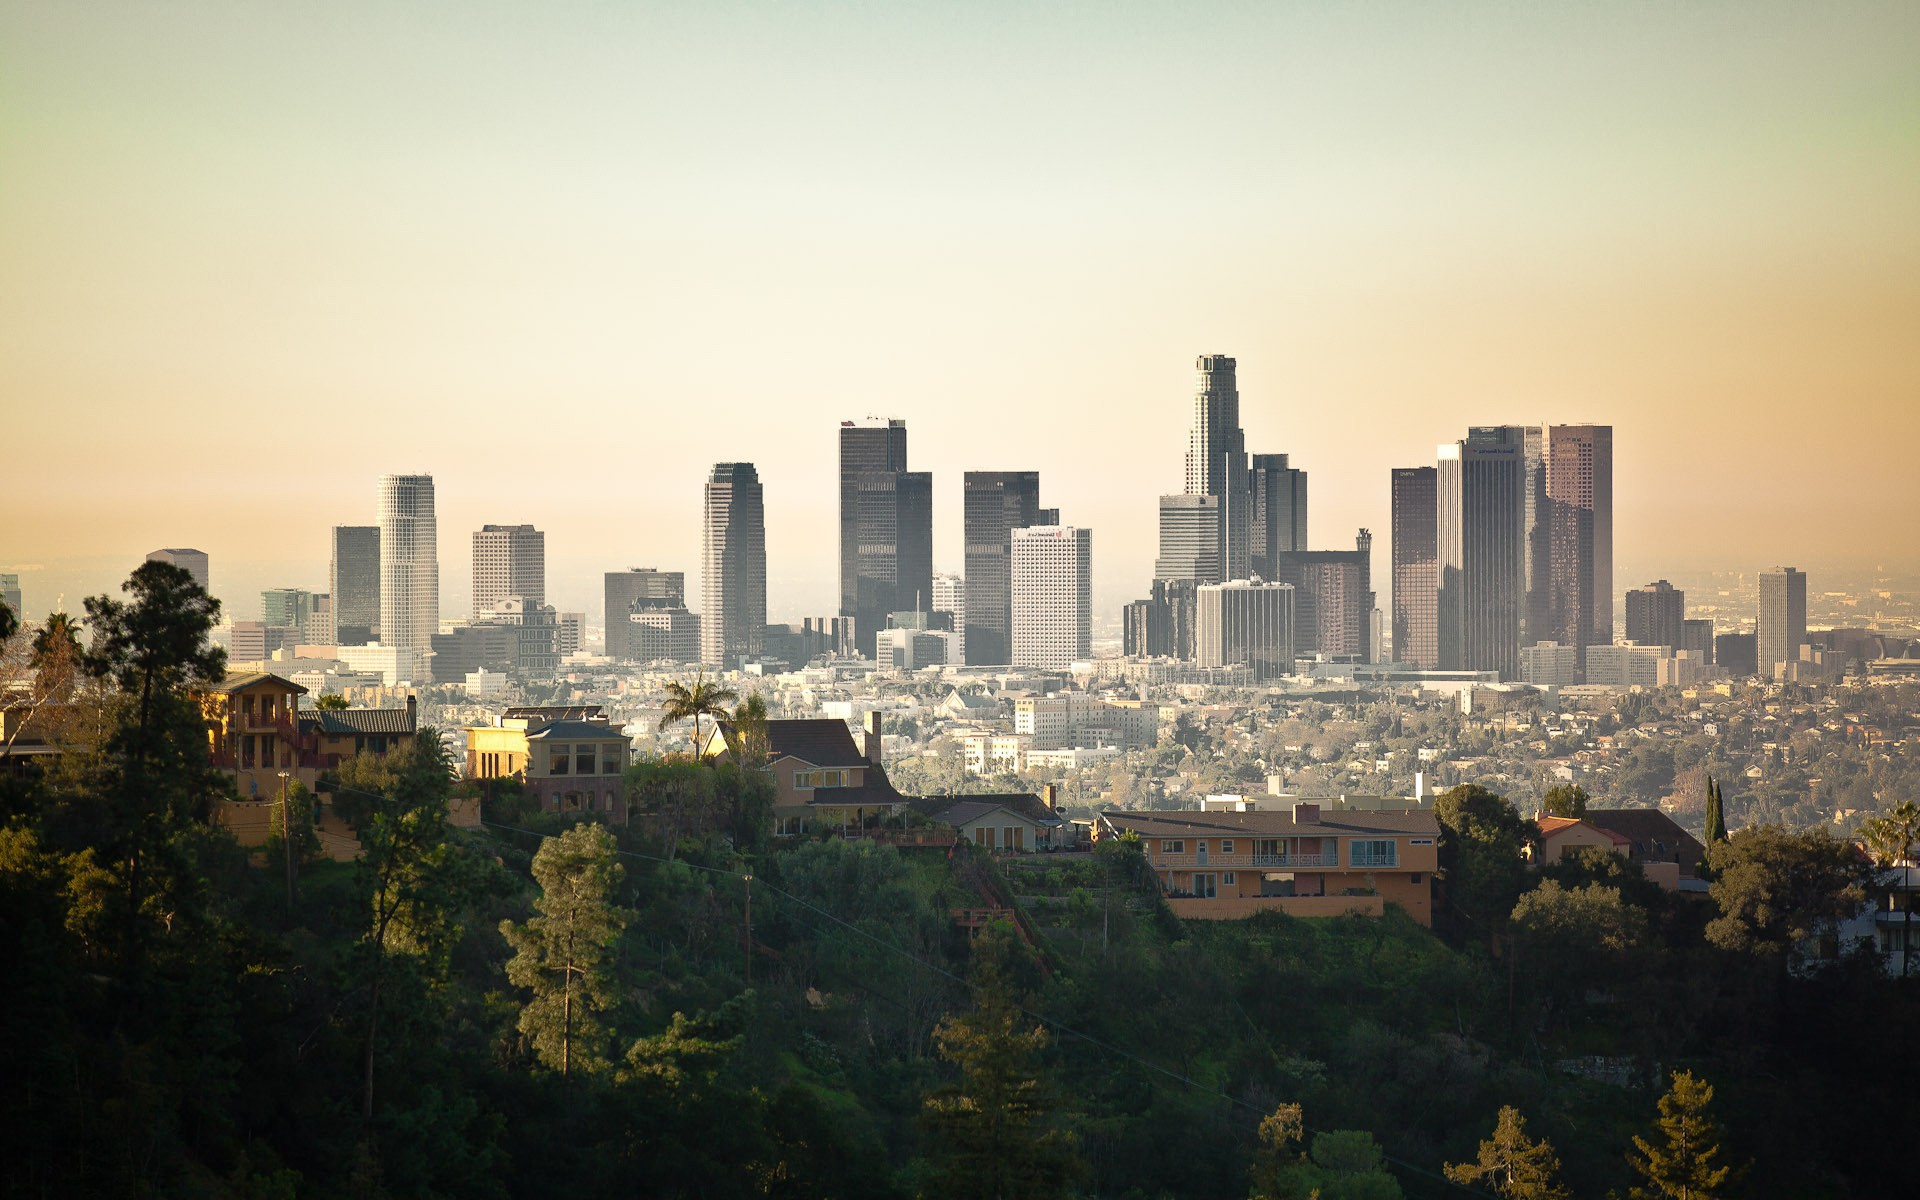 LA Wallpapers: Los Angeles Wallpaper Available For Download In HD 1920x1200